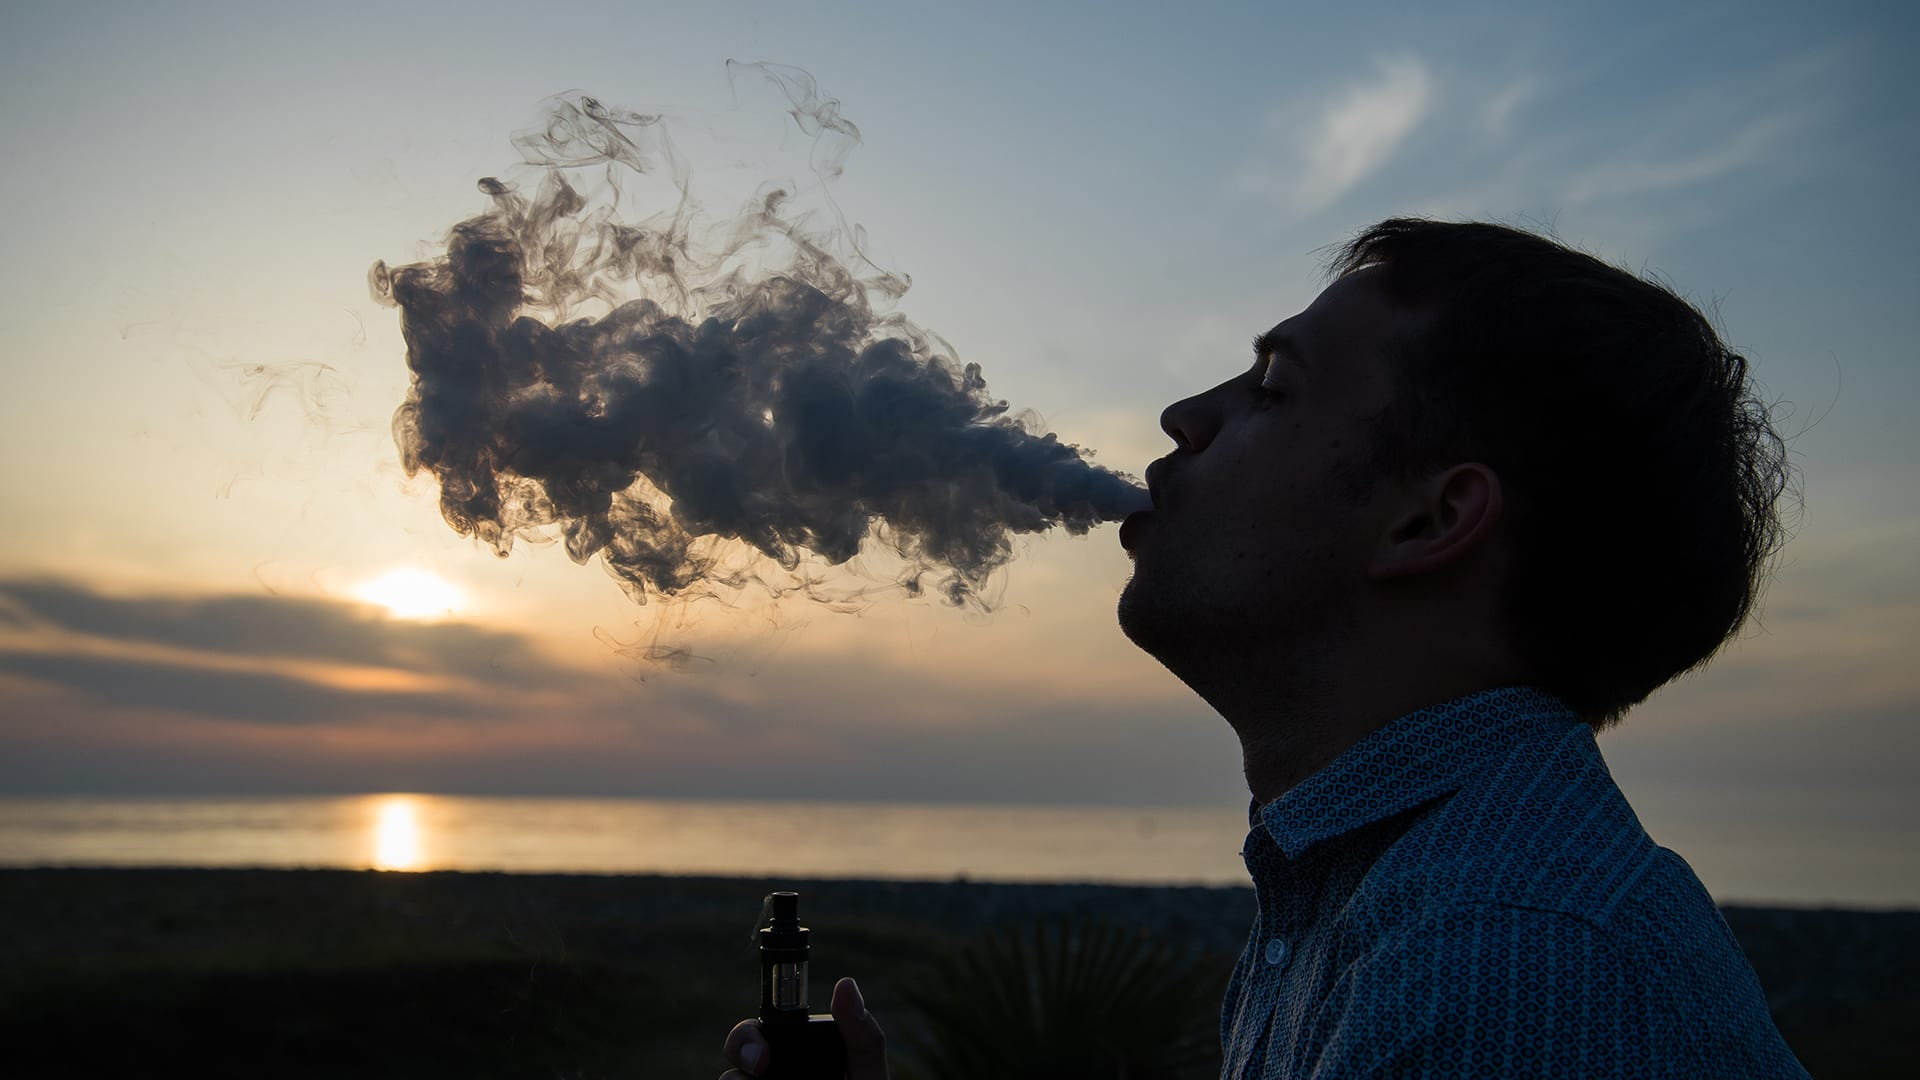 Vaping Competitions & Cloud Chasers